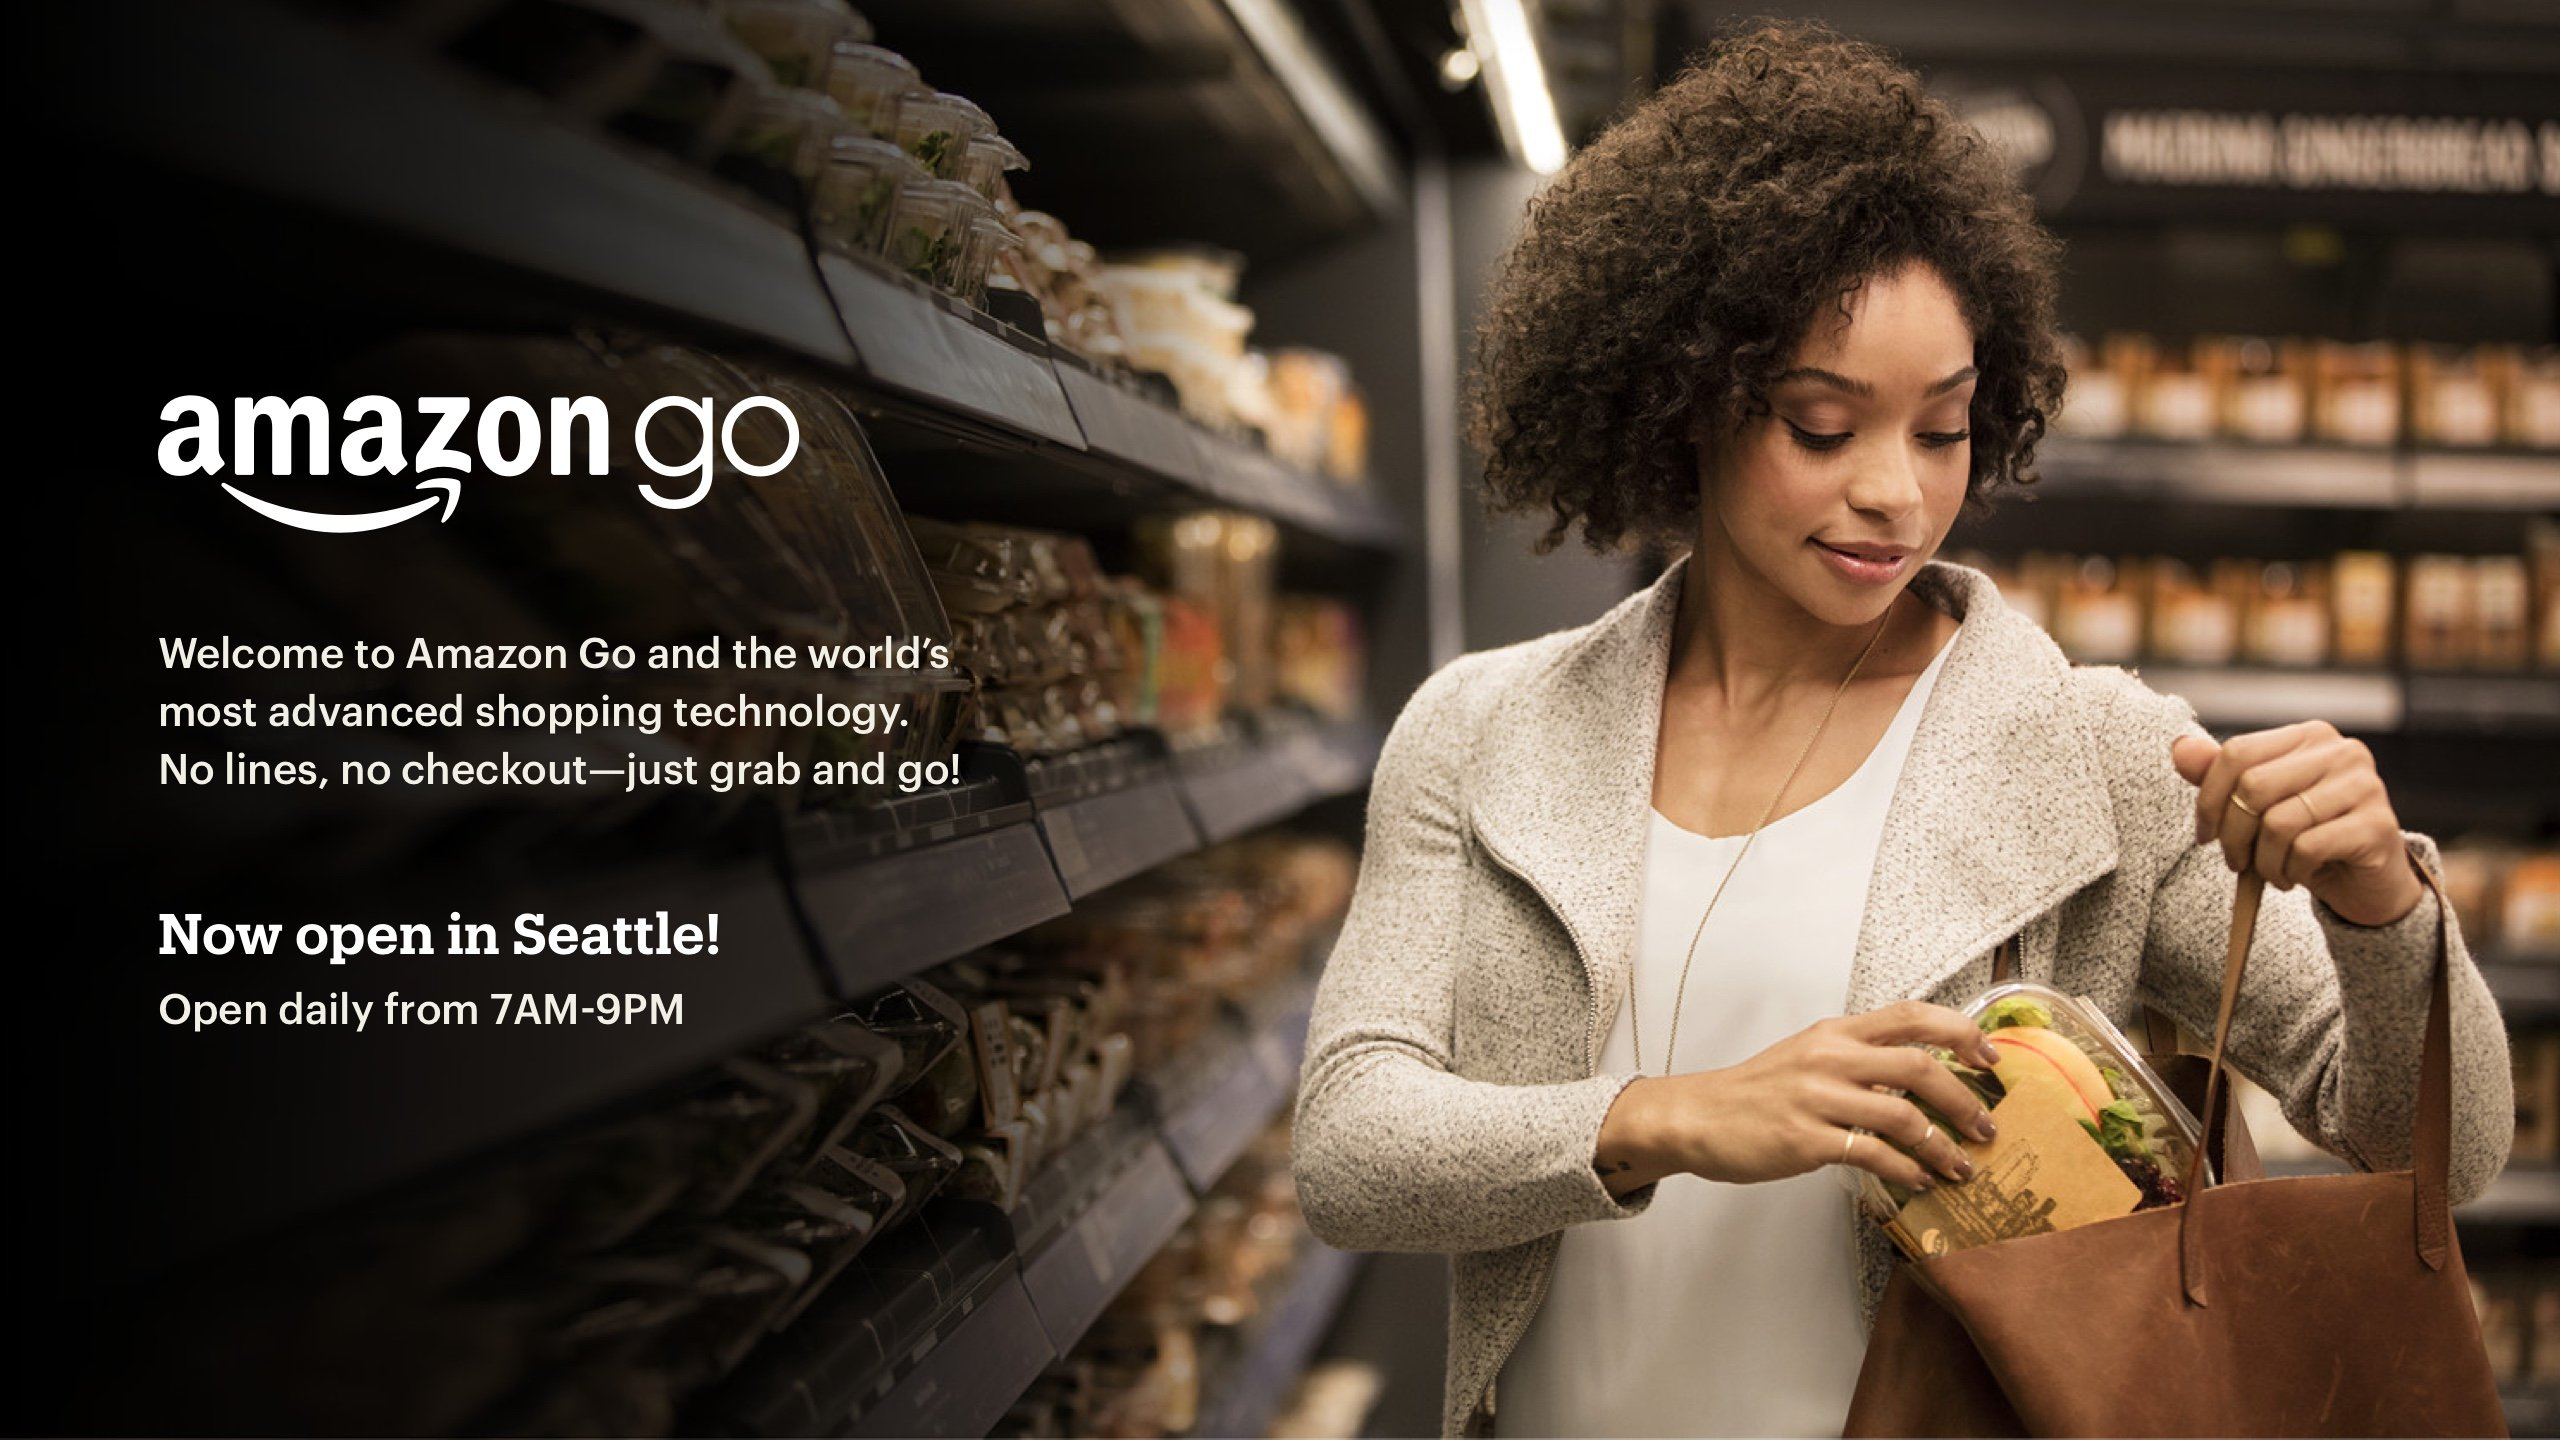 Amazon Go Video